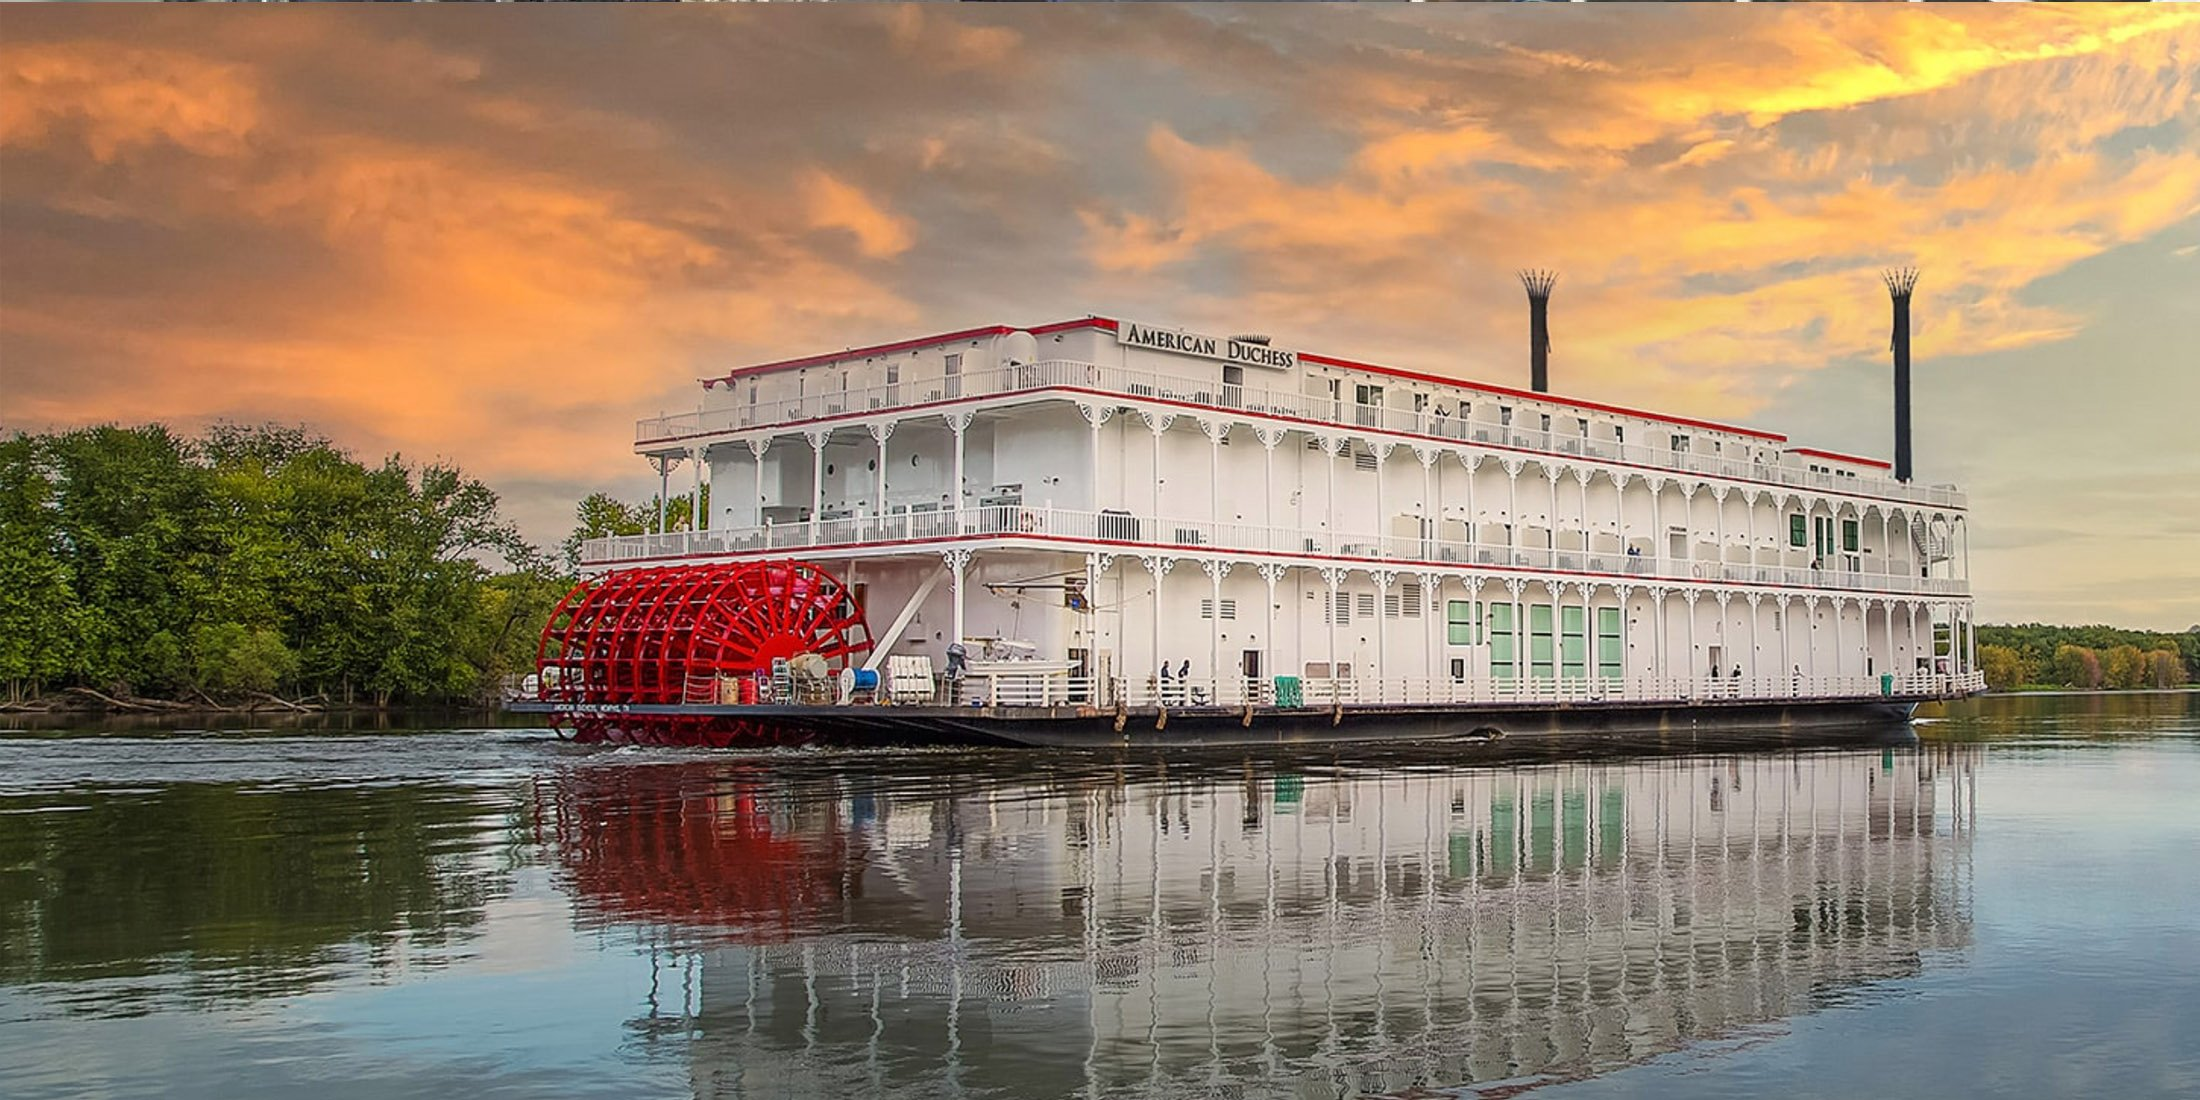 Meet The Boutique-Style Riverboat, The American Duchess!